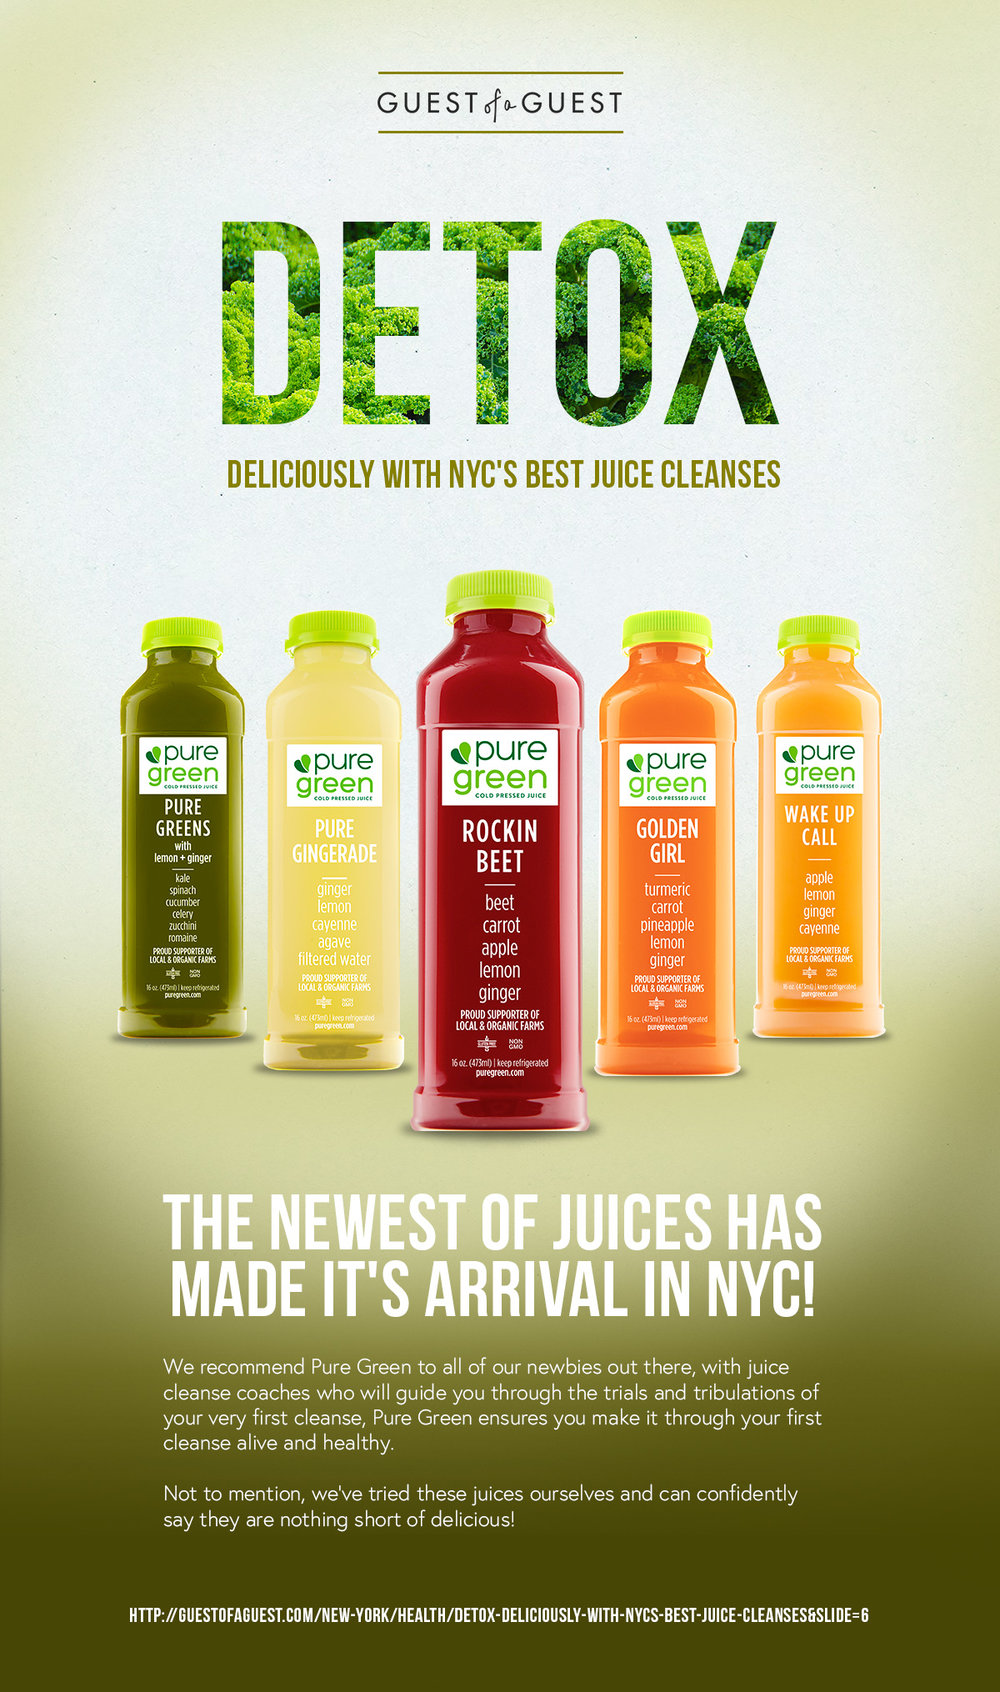 Pure Green is New York City's Best Cold Pressed Juicejpg